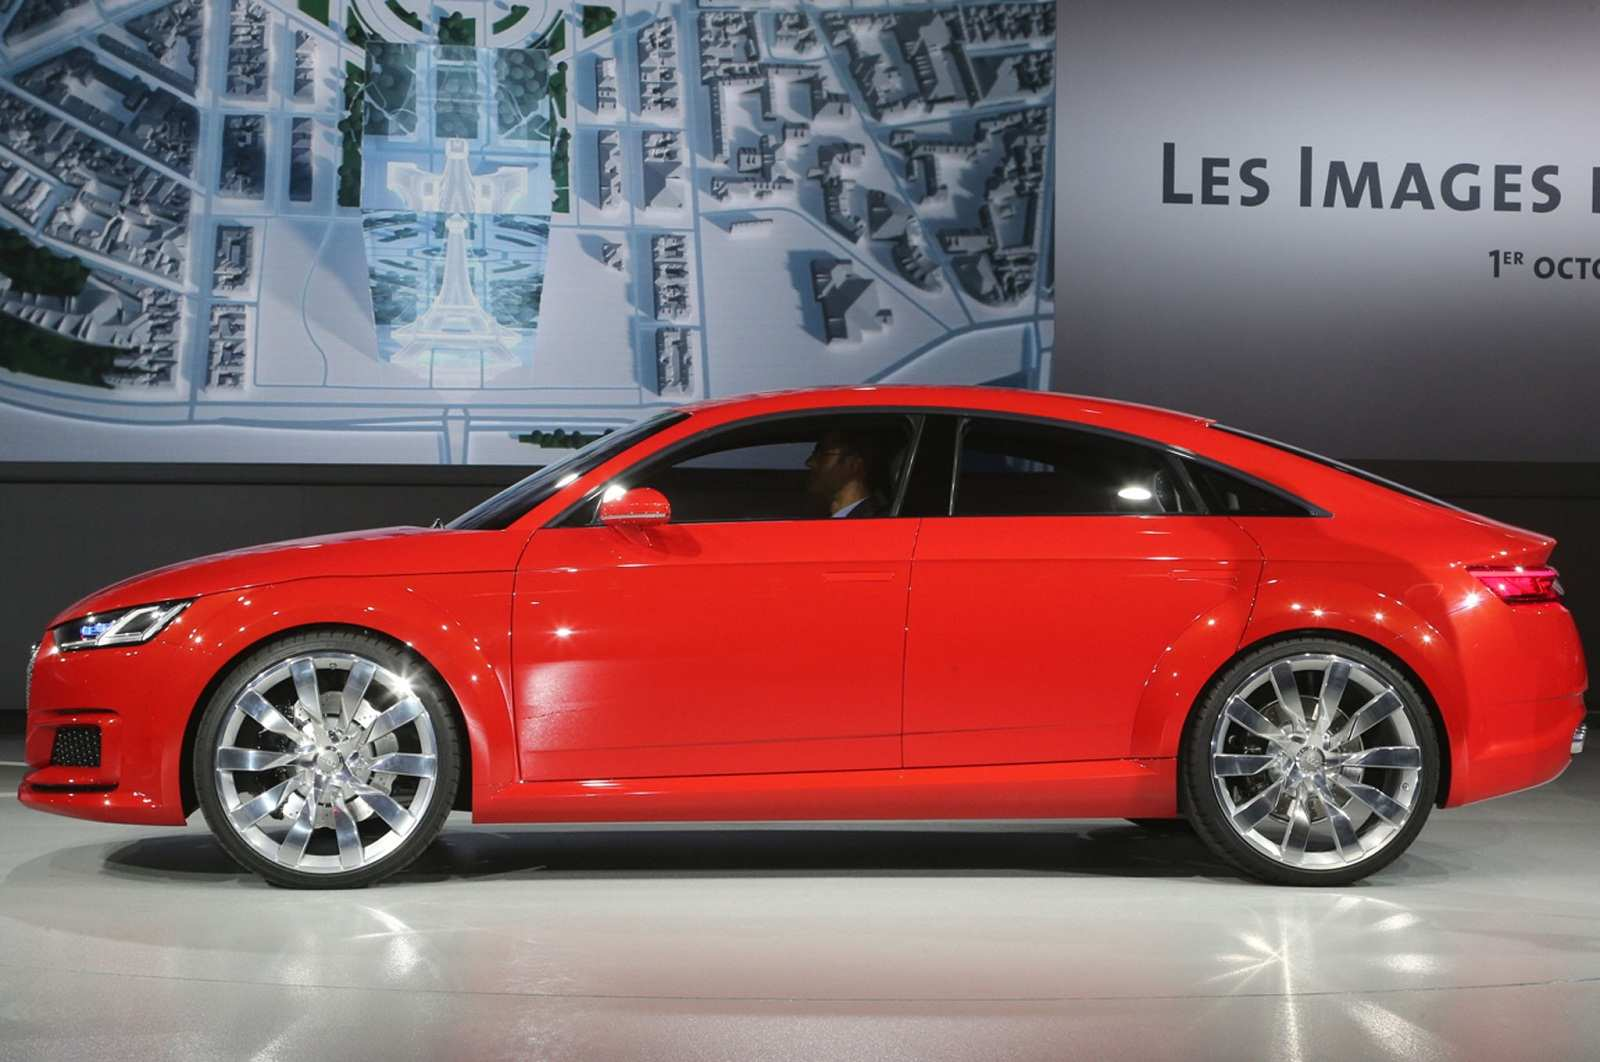 71 All New 2019 Audi Tt Release Date Images with 2019 Audi Tt Release Date